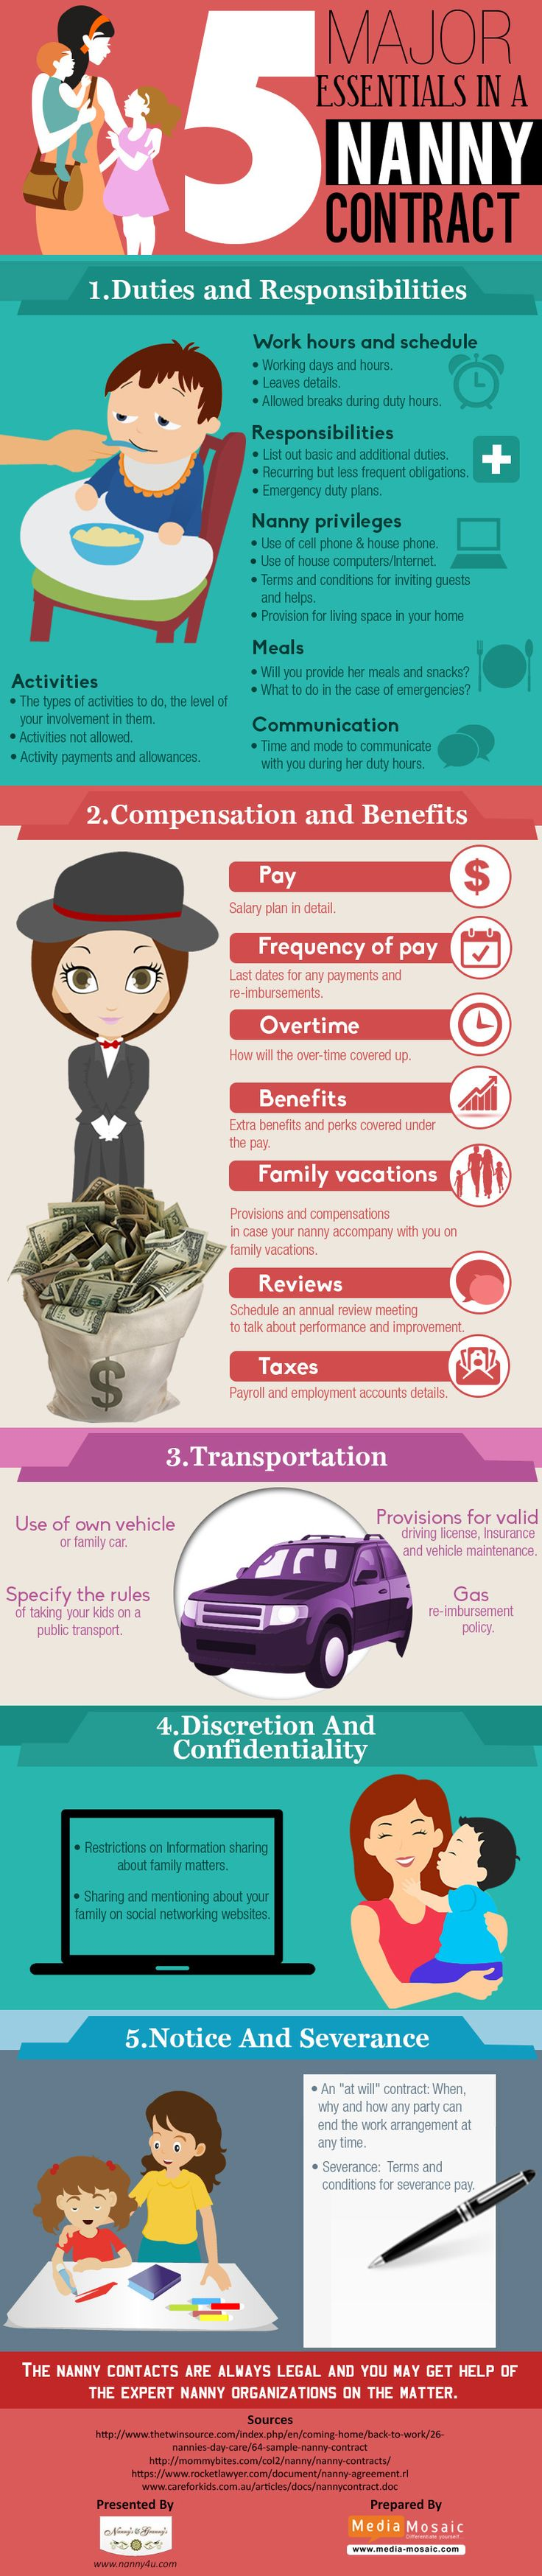 best ideas about nanny binder nanny activities 5 major essentials in a nanny contract infographic nanny family